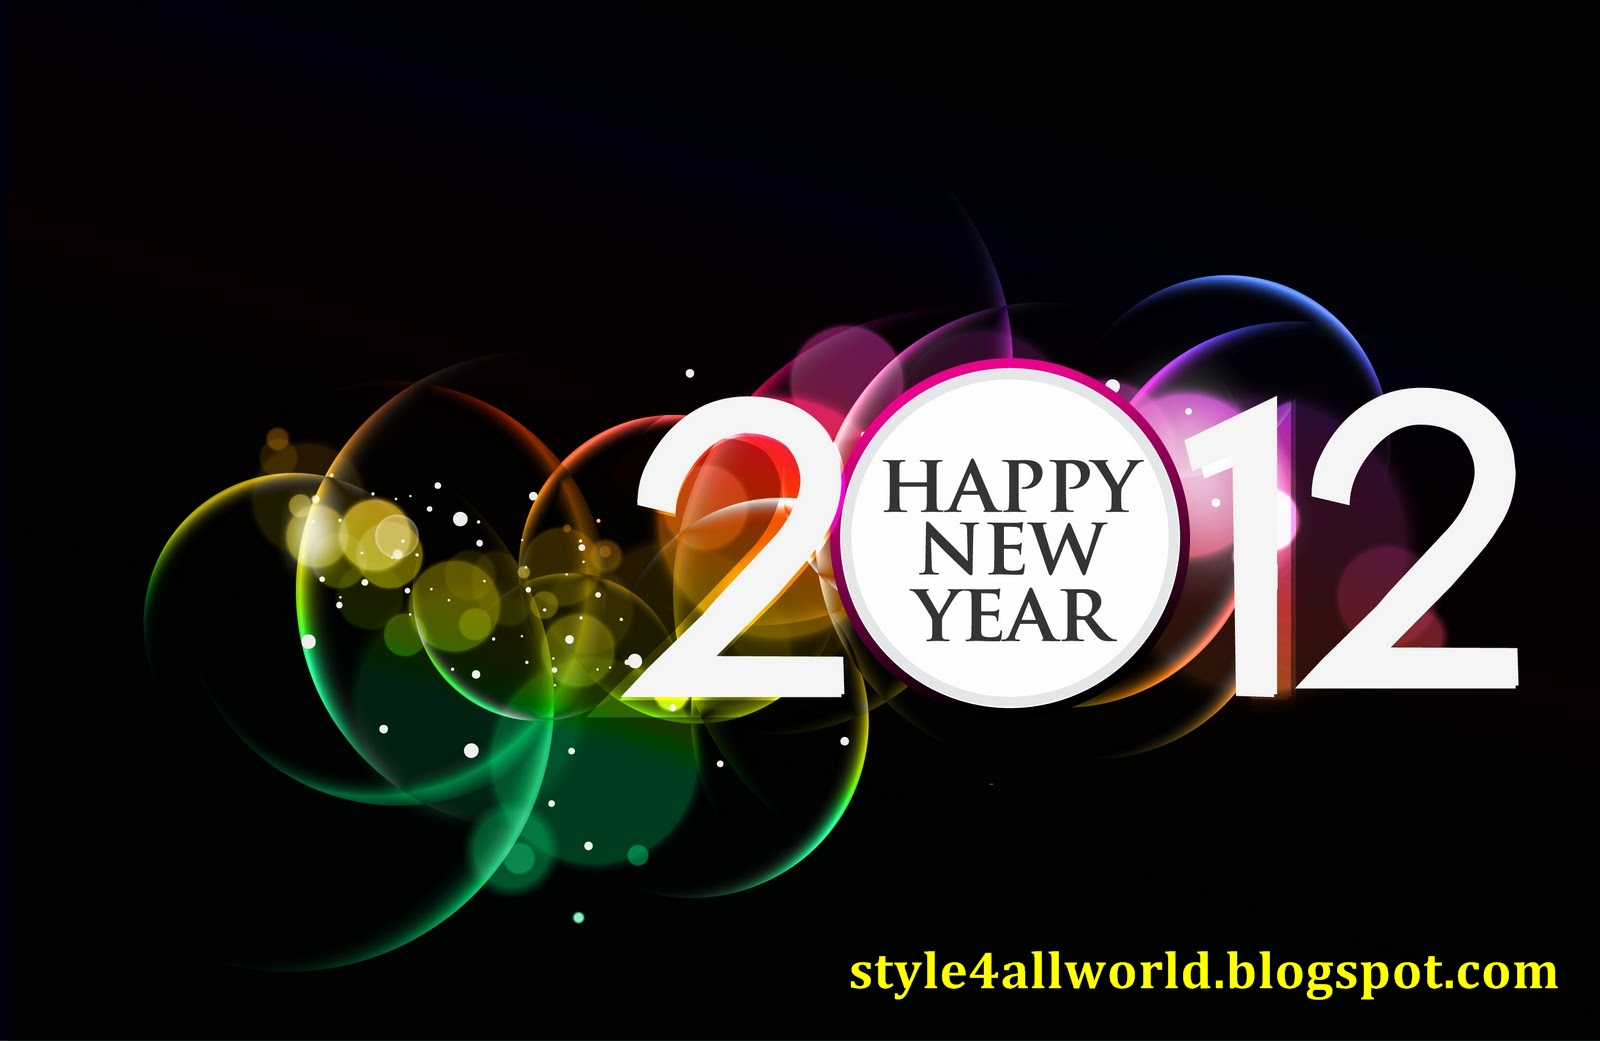 Happy New Year Greetings Wallpapers 2012 Best 2012 New Year Wallpaper